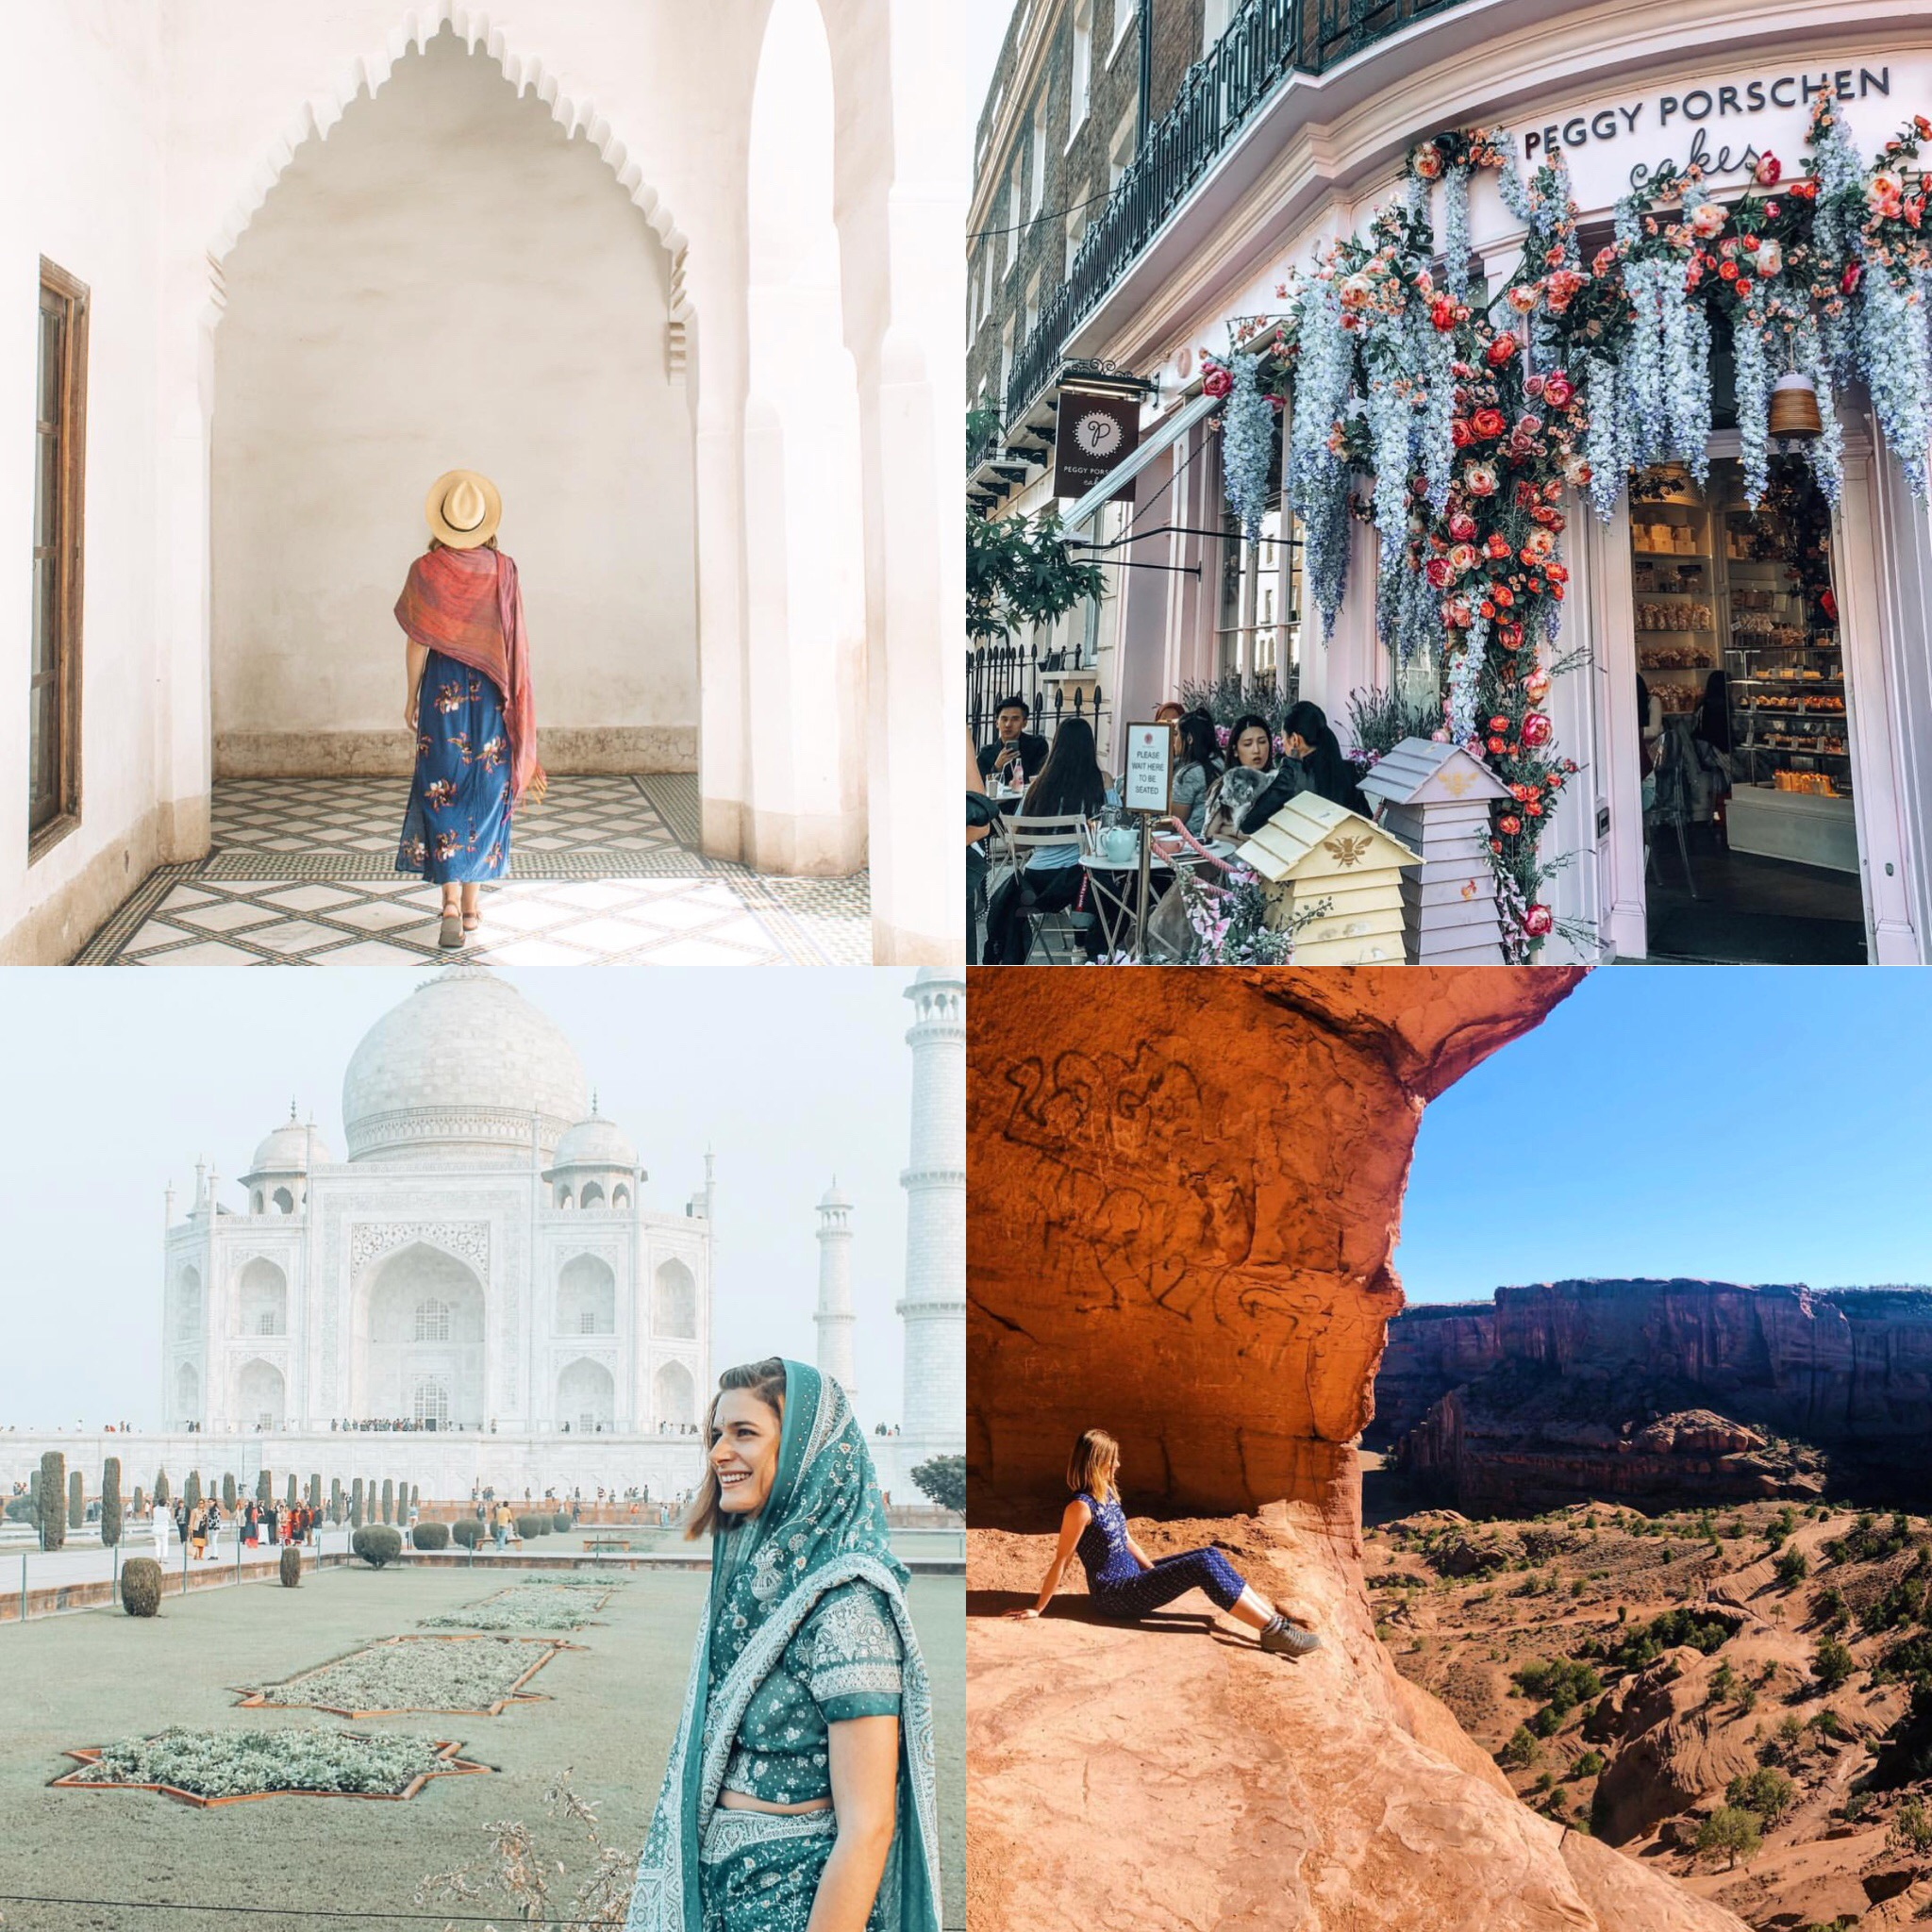 If you love to travel, you should follow @theatlasheart on Instagram. Her photos are lovely.